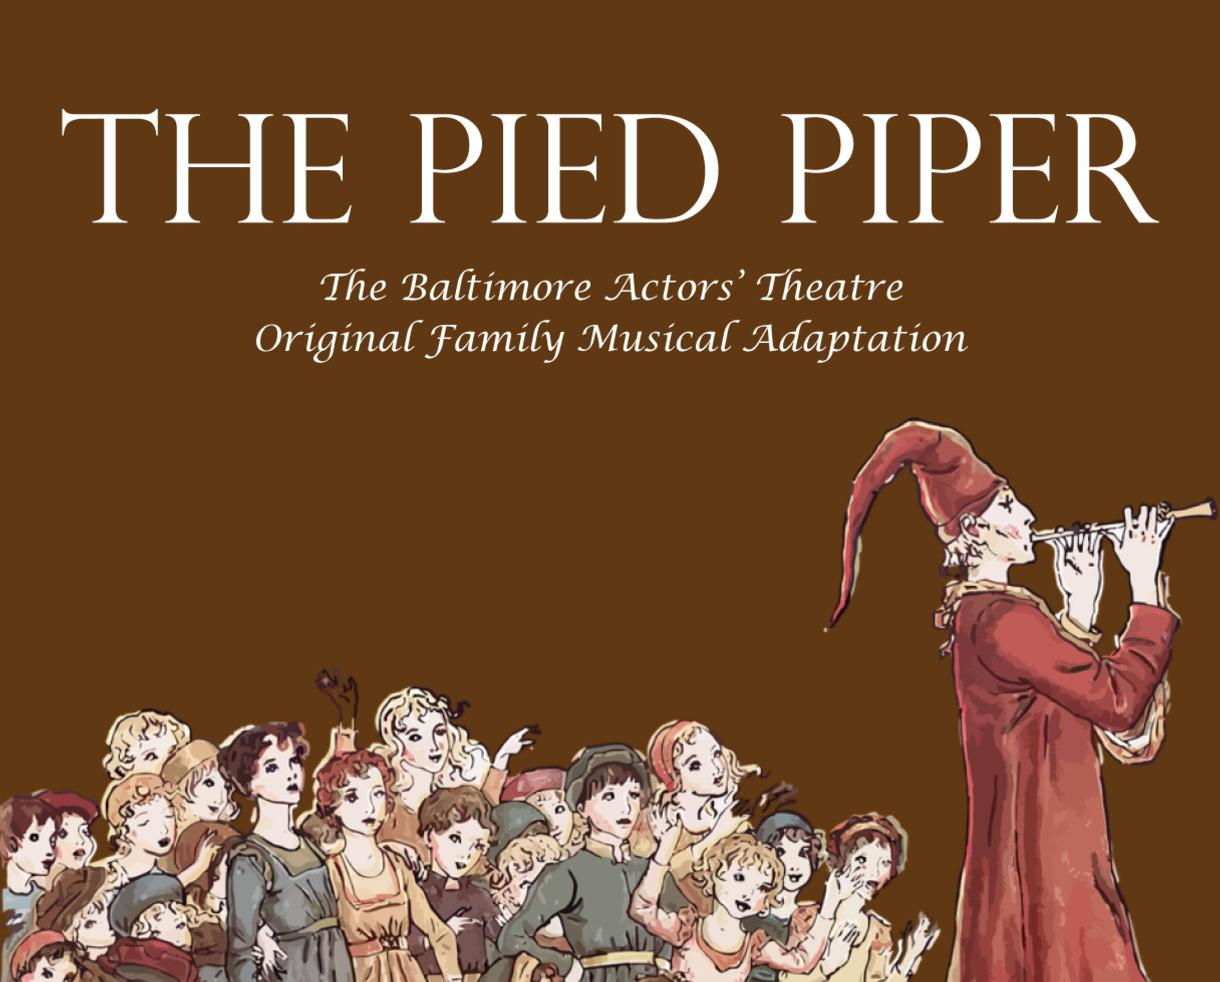 Child Ticket to The Pied Piper Wednesday Performance at Oregon Ridge Park